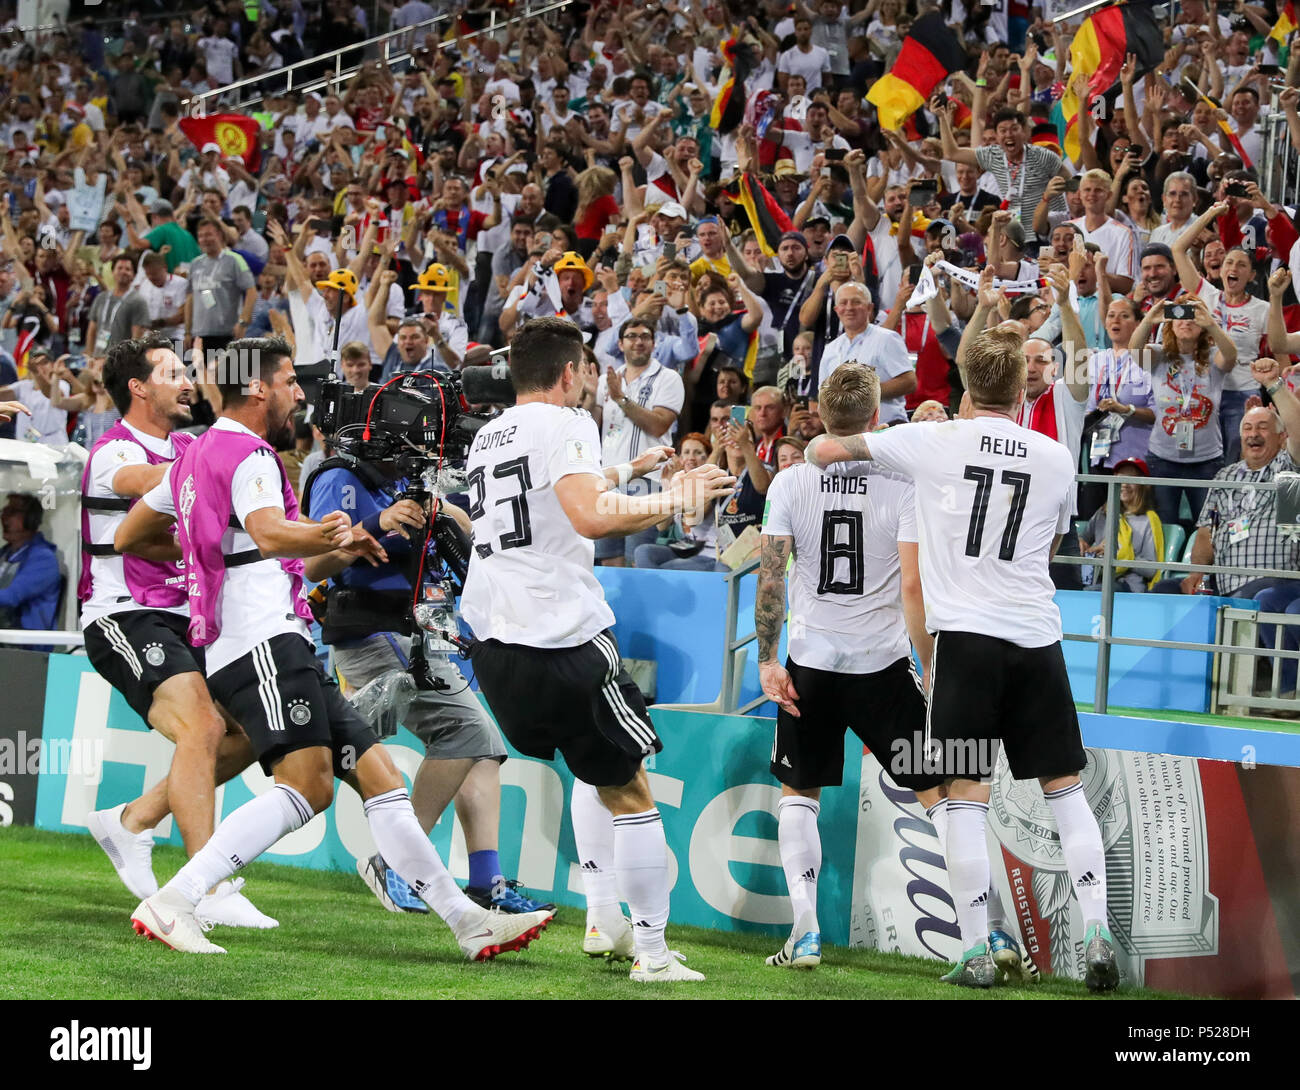 074adb95b Germany Vs Sweden Stock Photos & Germany Vs Sweden Stock Images - Alamy